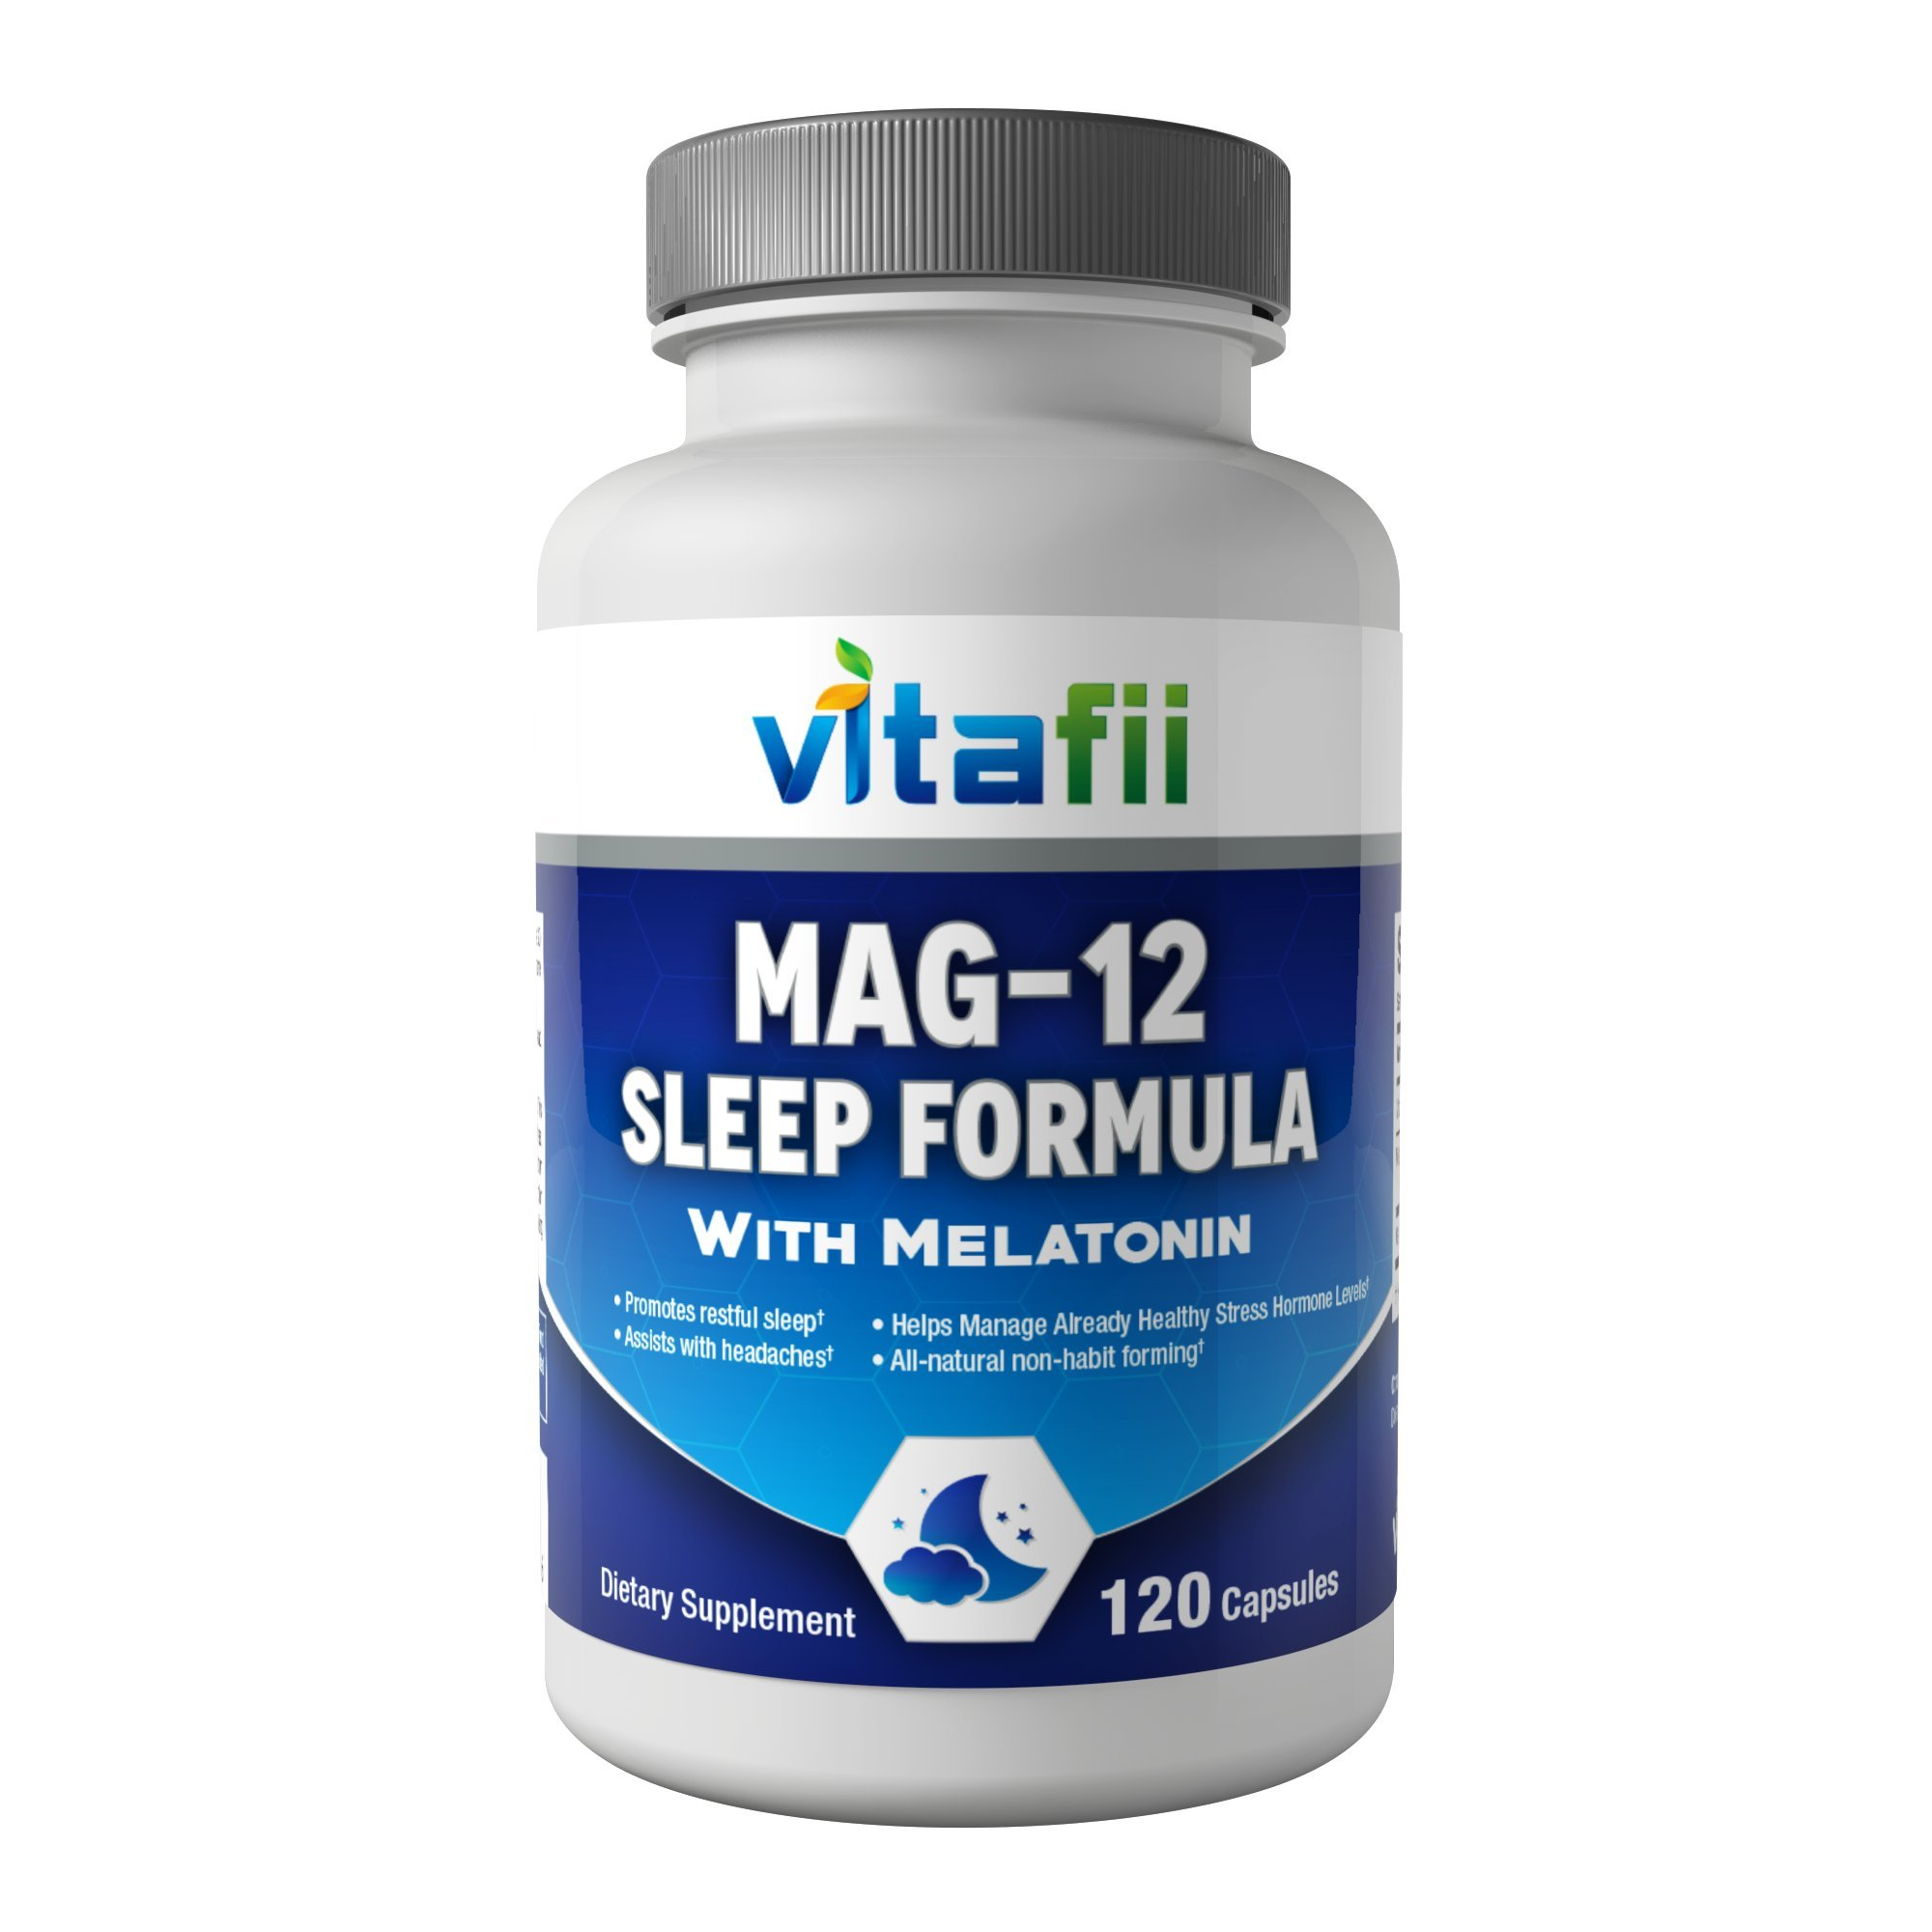 Vitafii Natural Sleep Aid Supplement - With Melatonin Magnesium Glycinate and Vitamin B12 - Non-Habit Forming Sleeping Pills - Aids and Supports a Calm Refreshed Sleep - 120 All-Natural Vegan Capsules